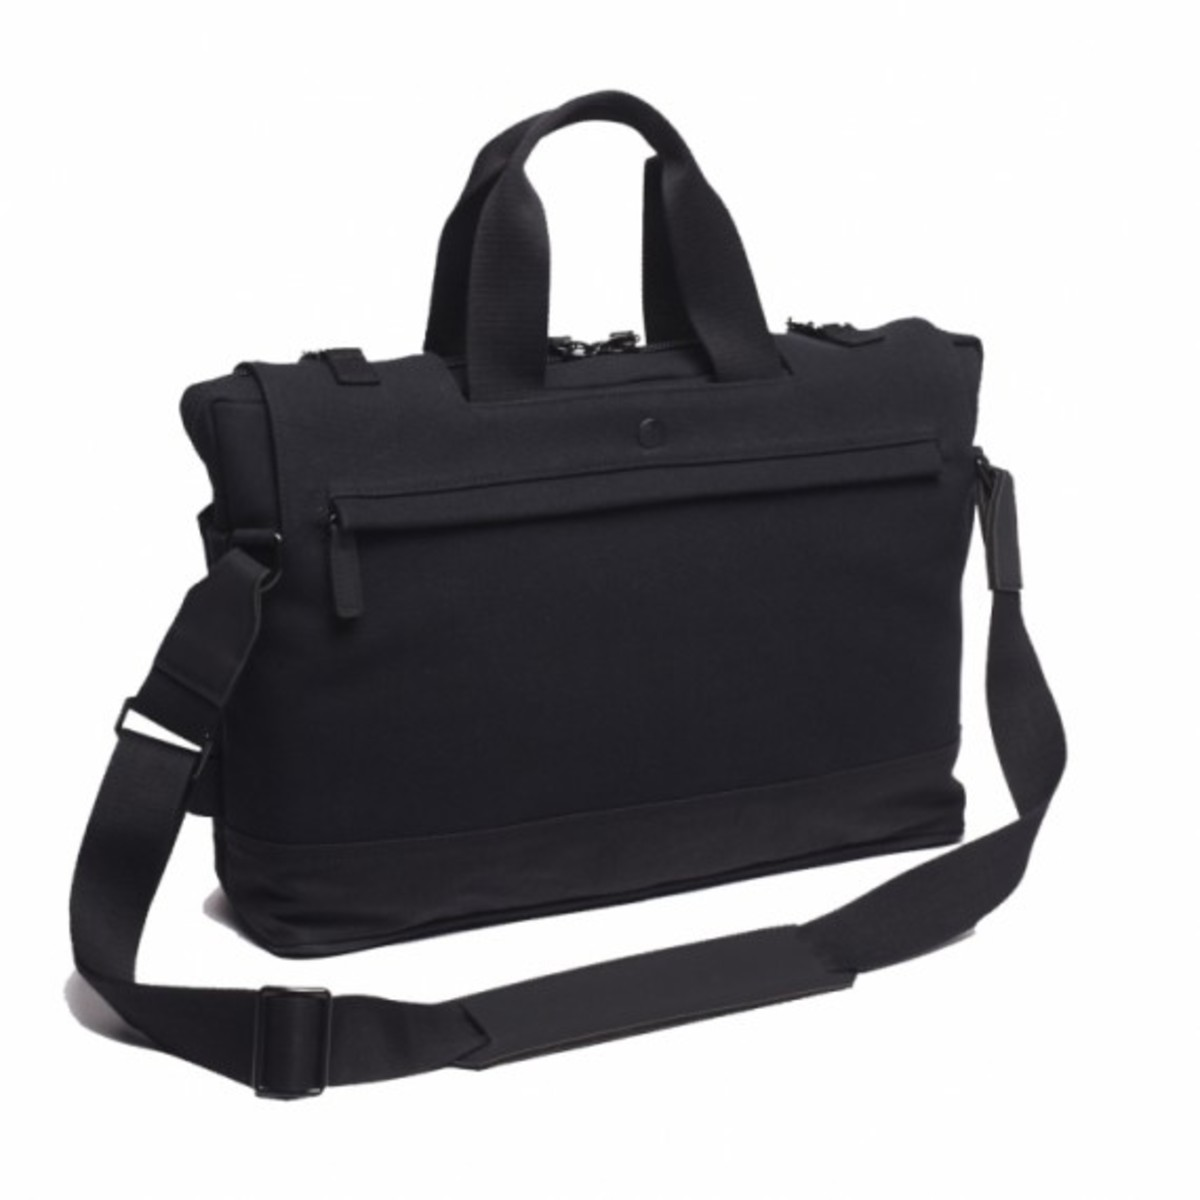 c6-bag-collection-6